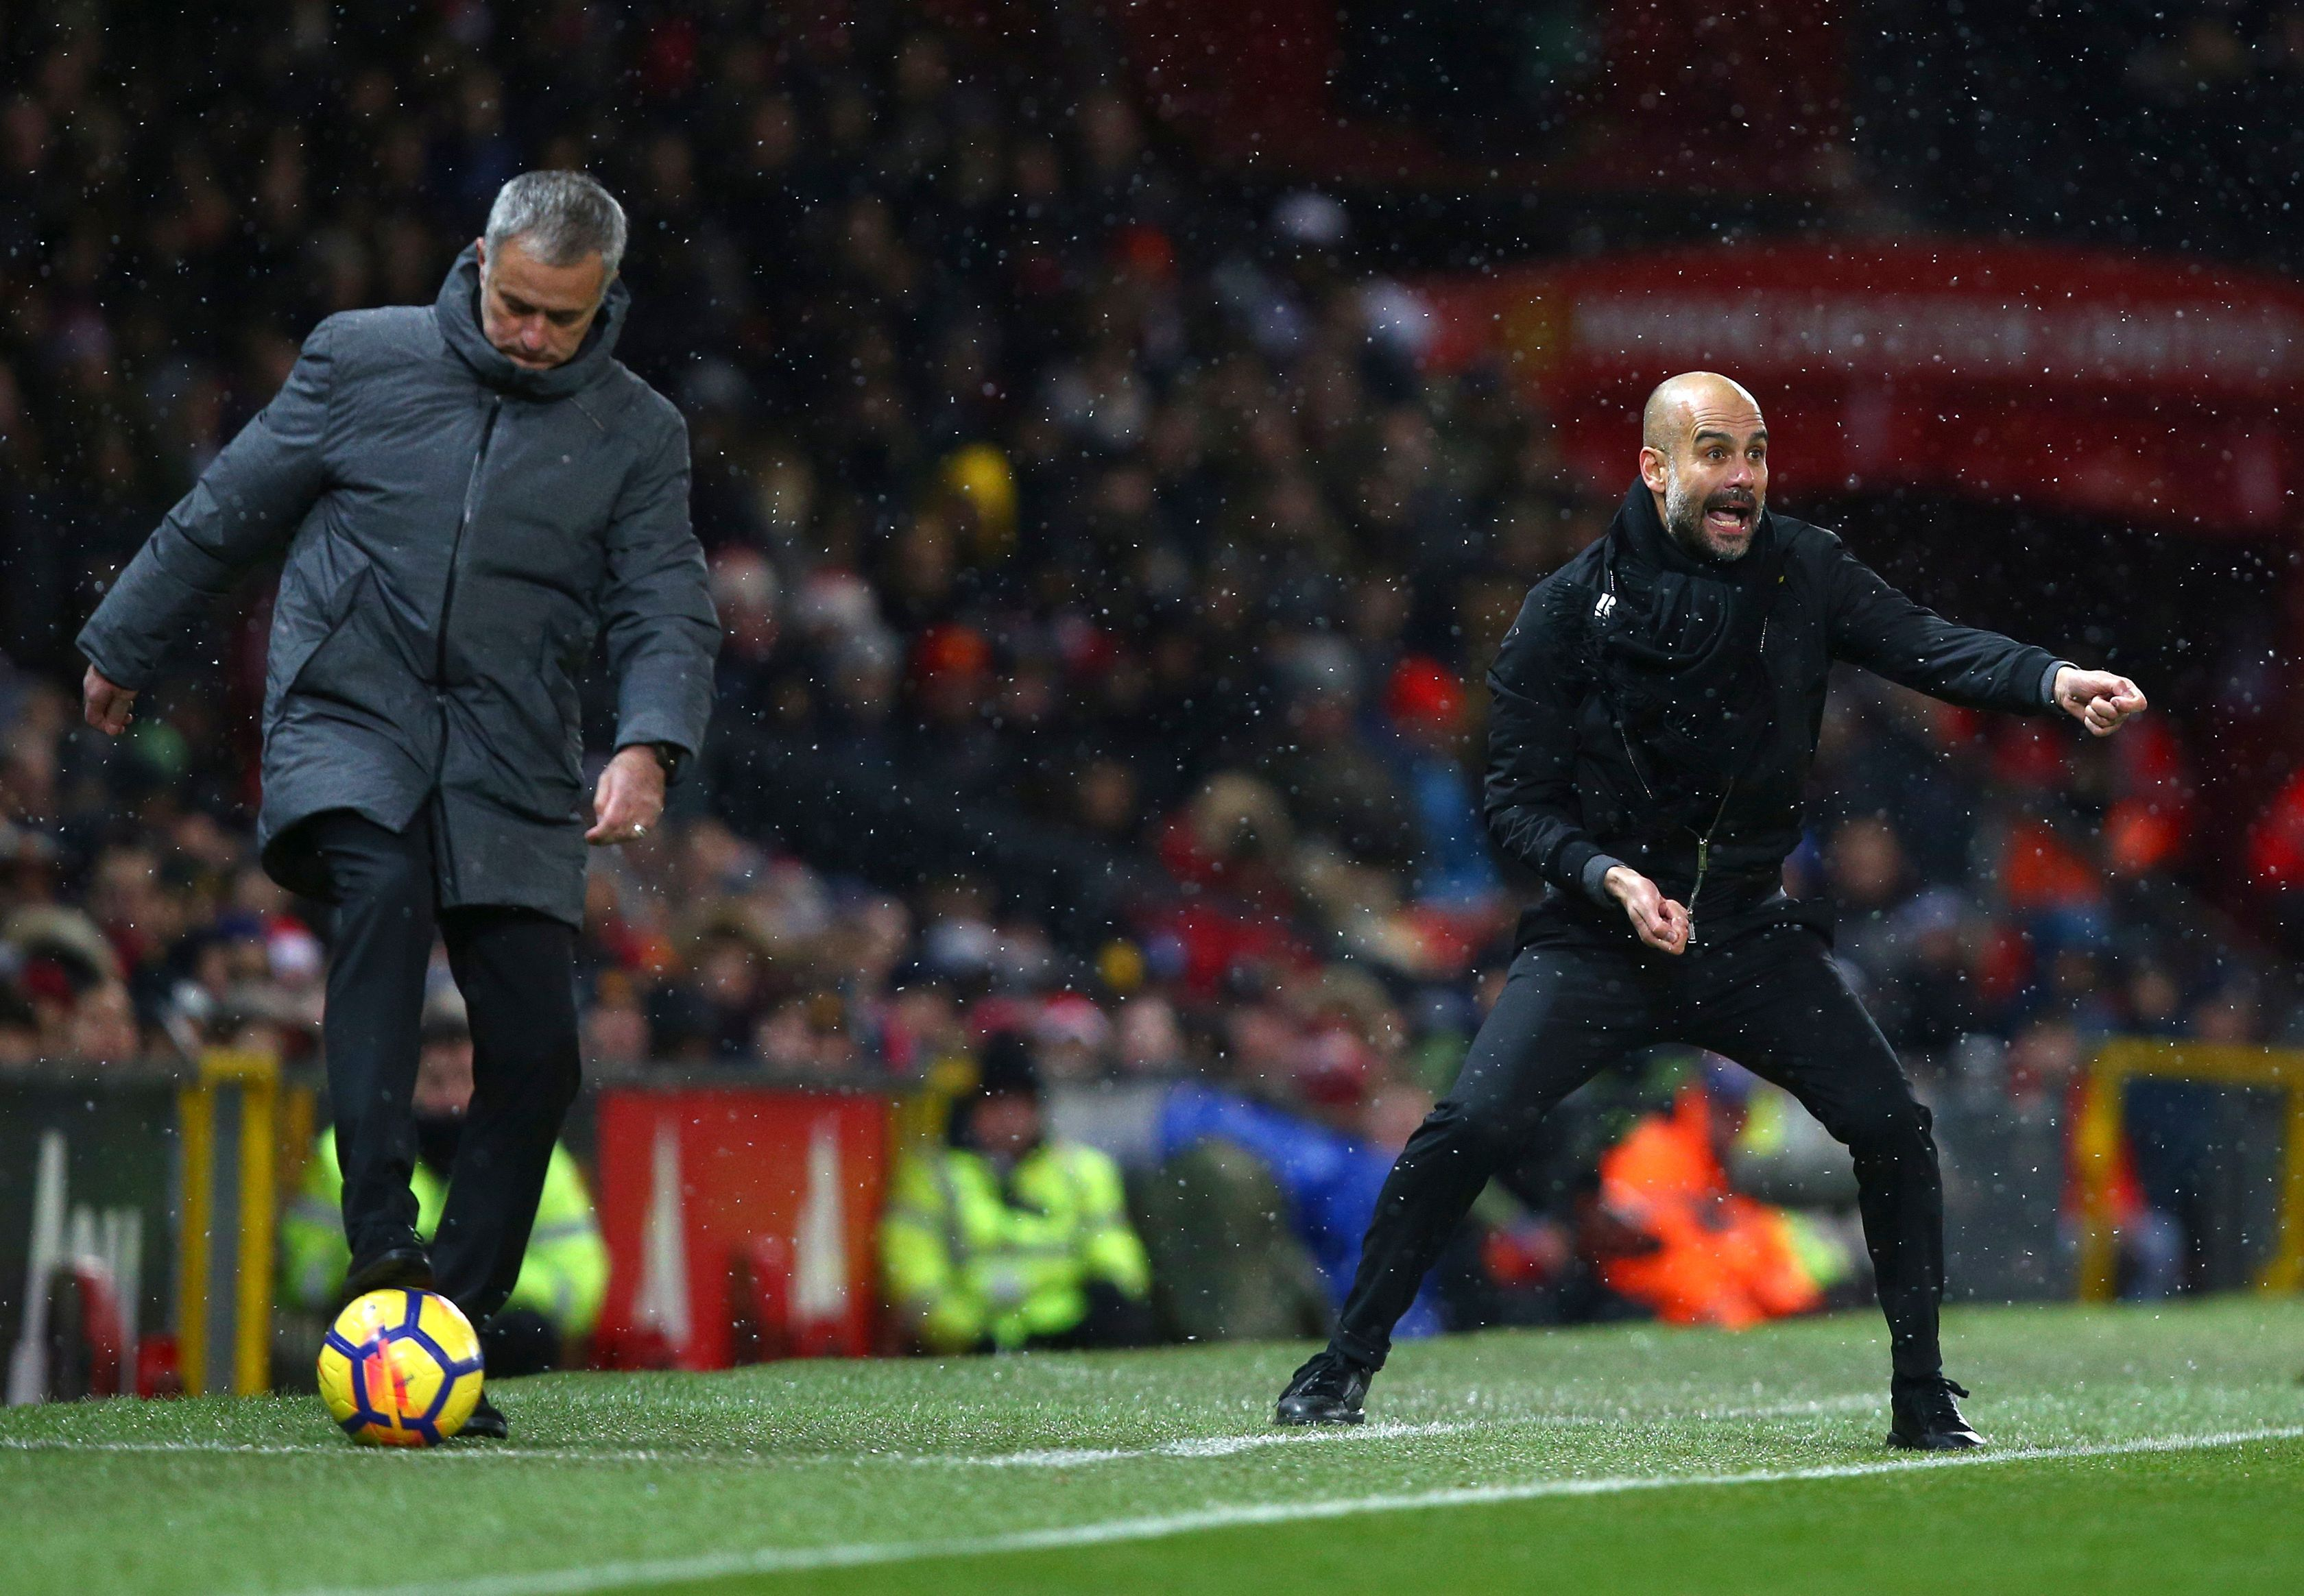 Recordsetting Manchester City wins derby to open up huge